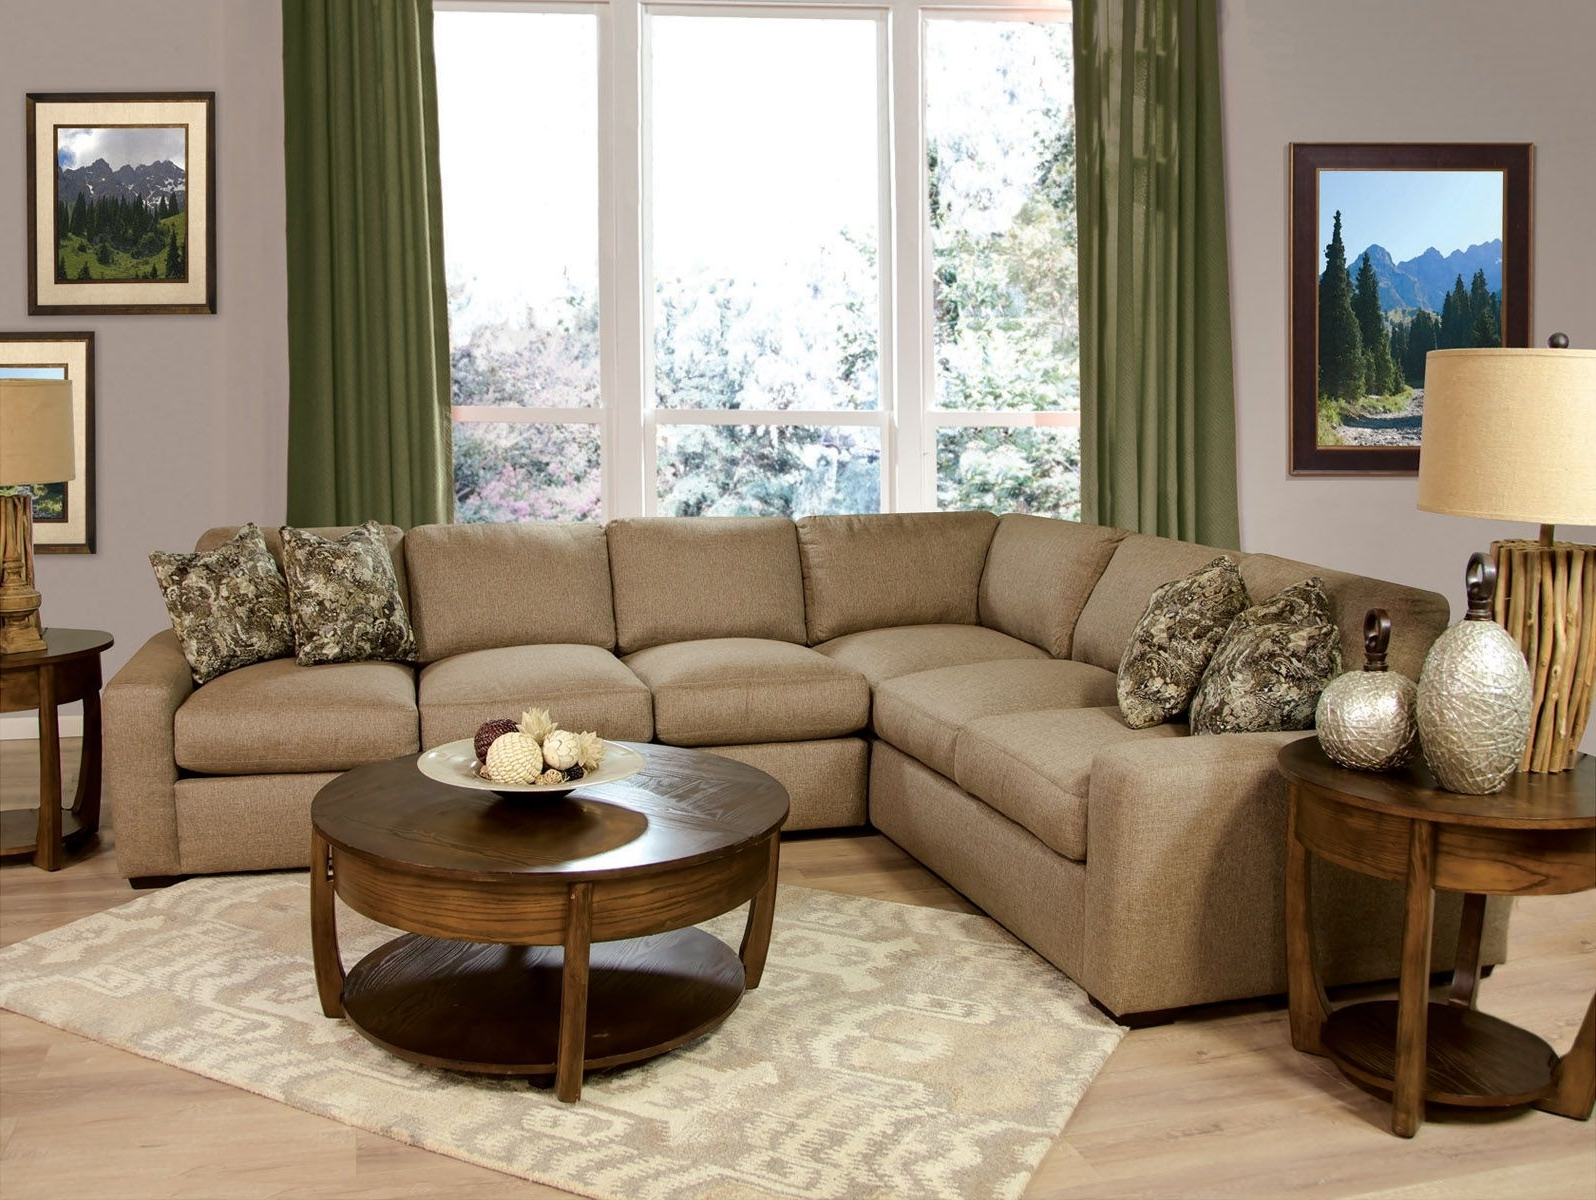 Favorite England Sectional Sofas Intended For England Furniture 2T00 64, 2T00 39, And 2T00 27 With Grande (View 11 of 20)